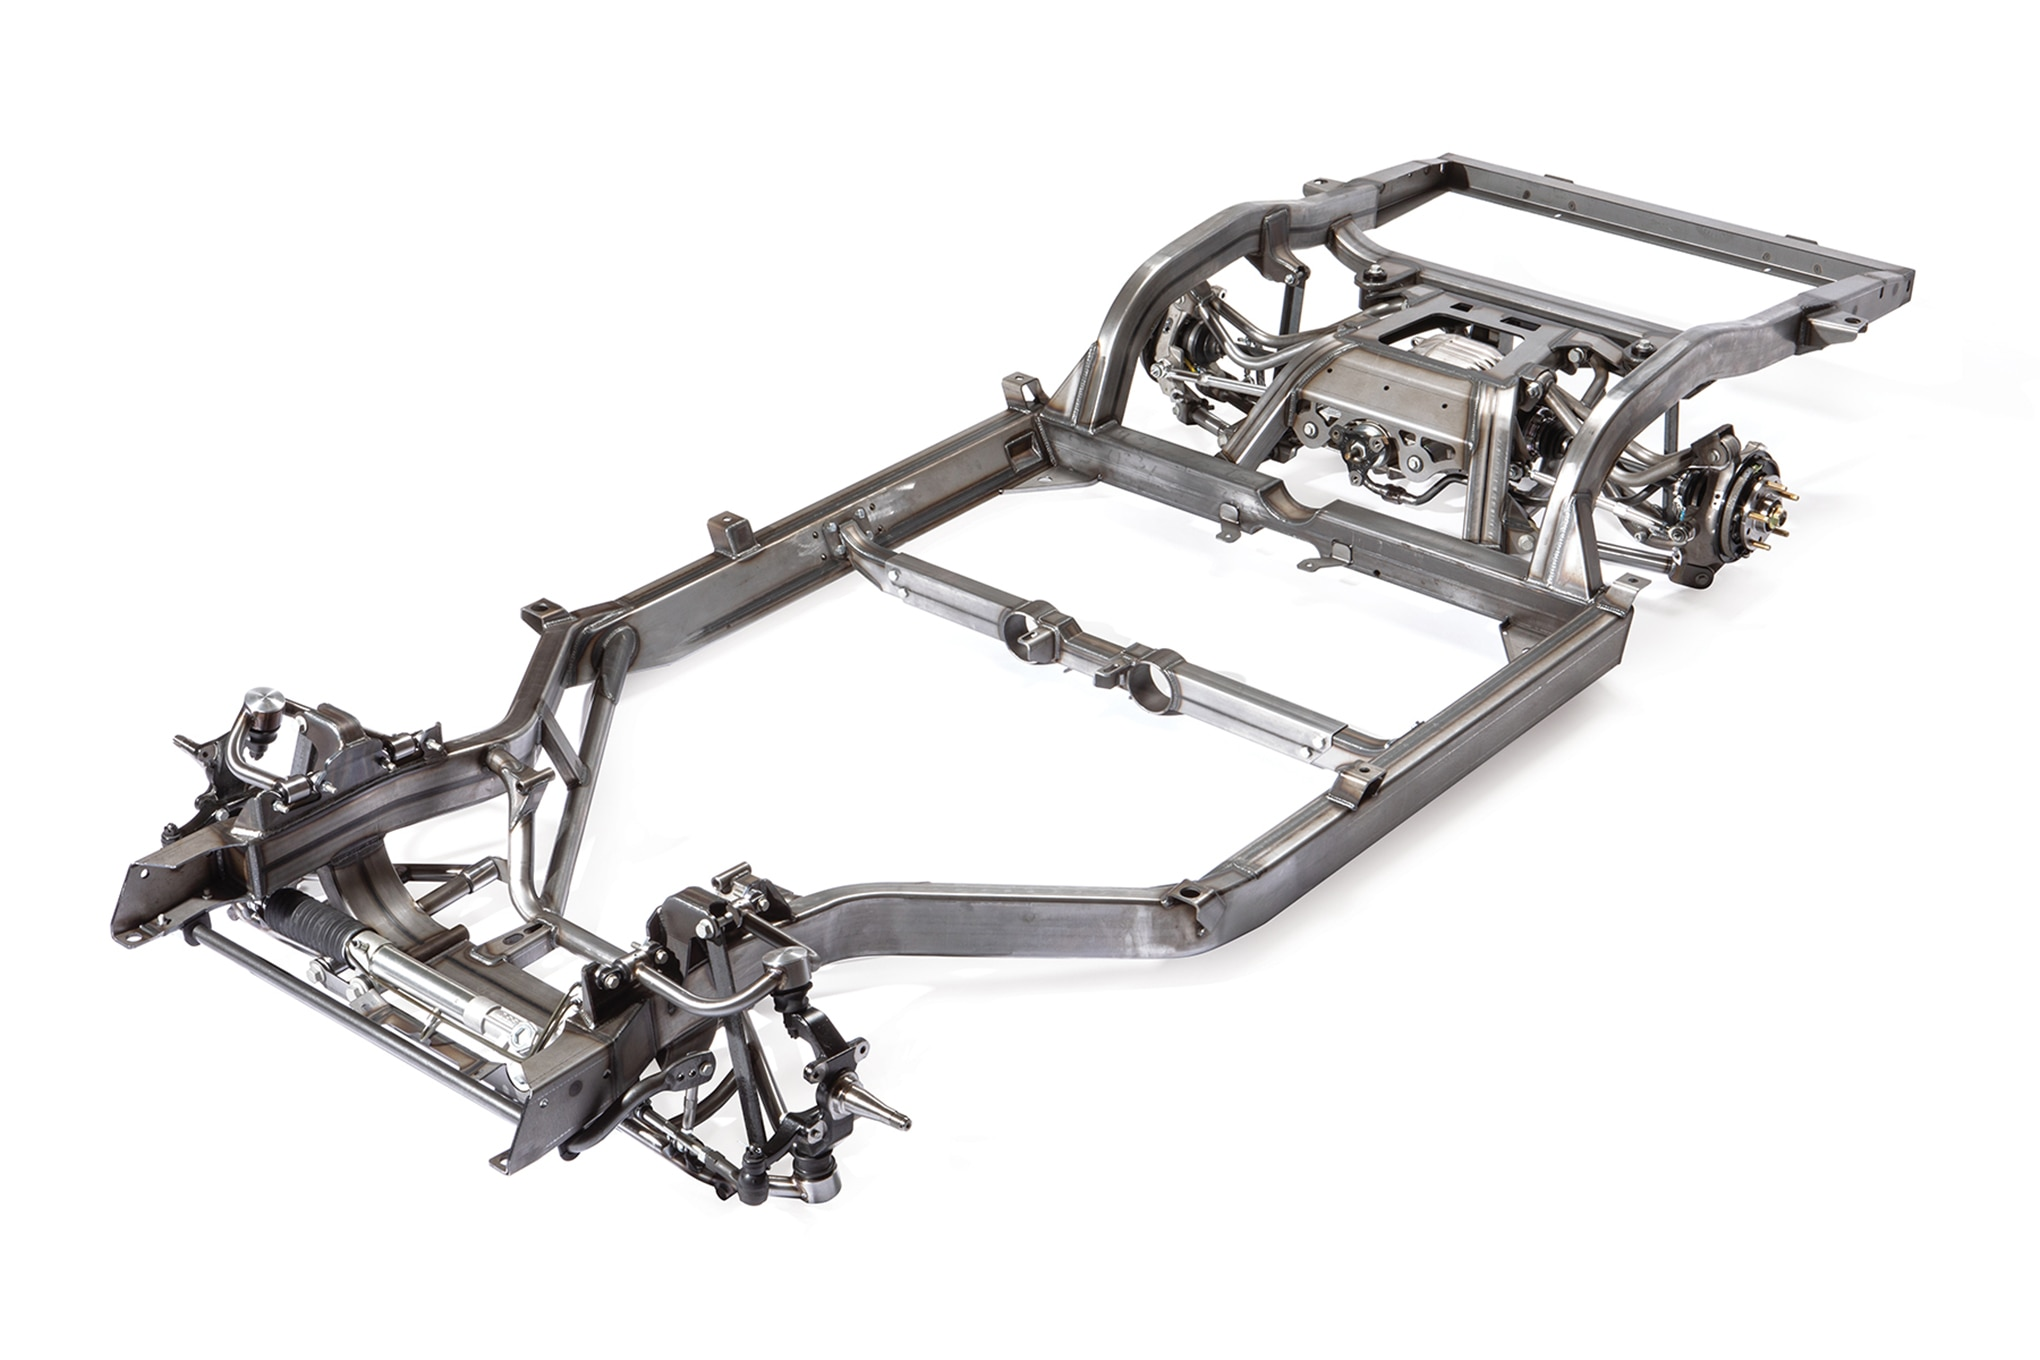 The Latest And Greatest New Parts For Your Hot Rod